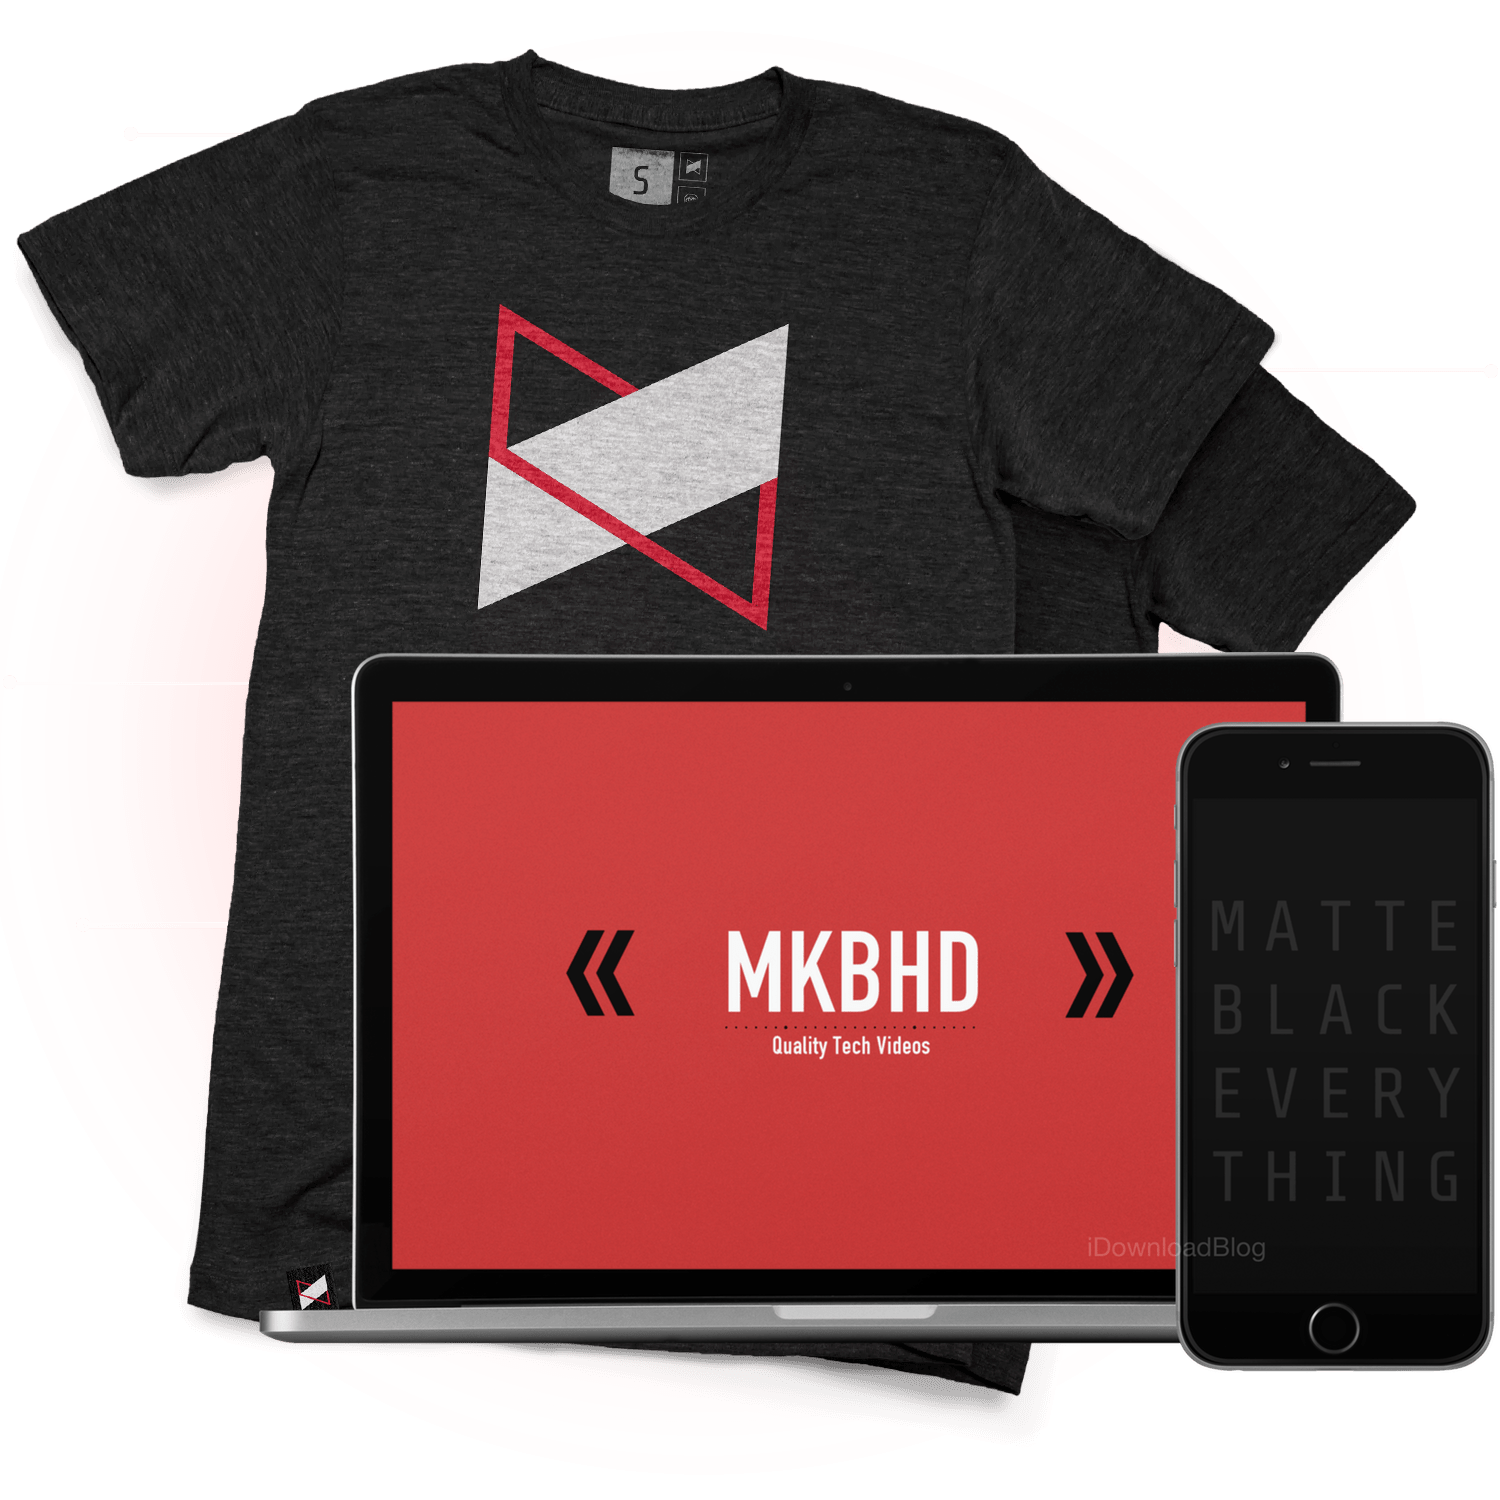 MKBHD wallpapers for iphone ipad desktop